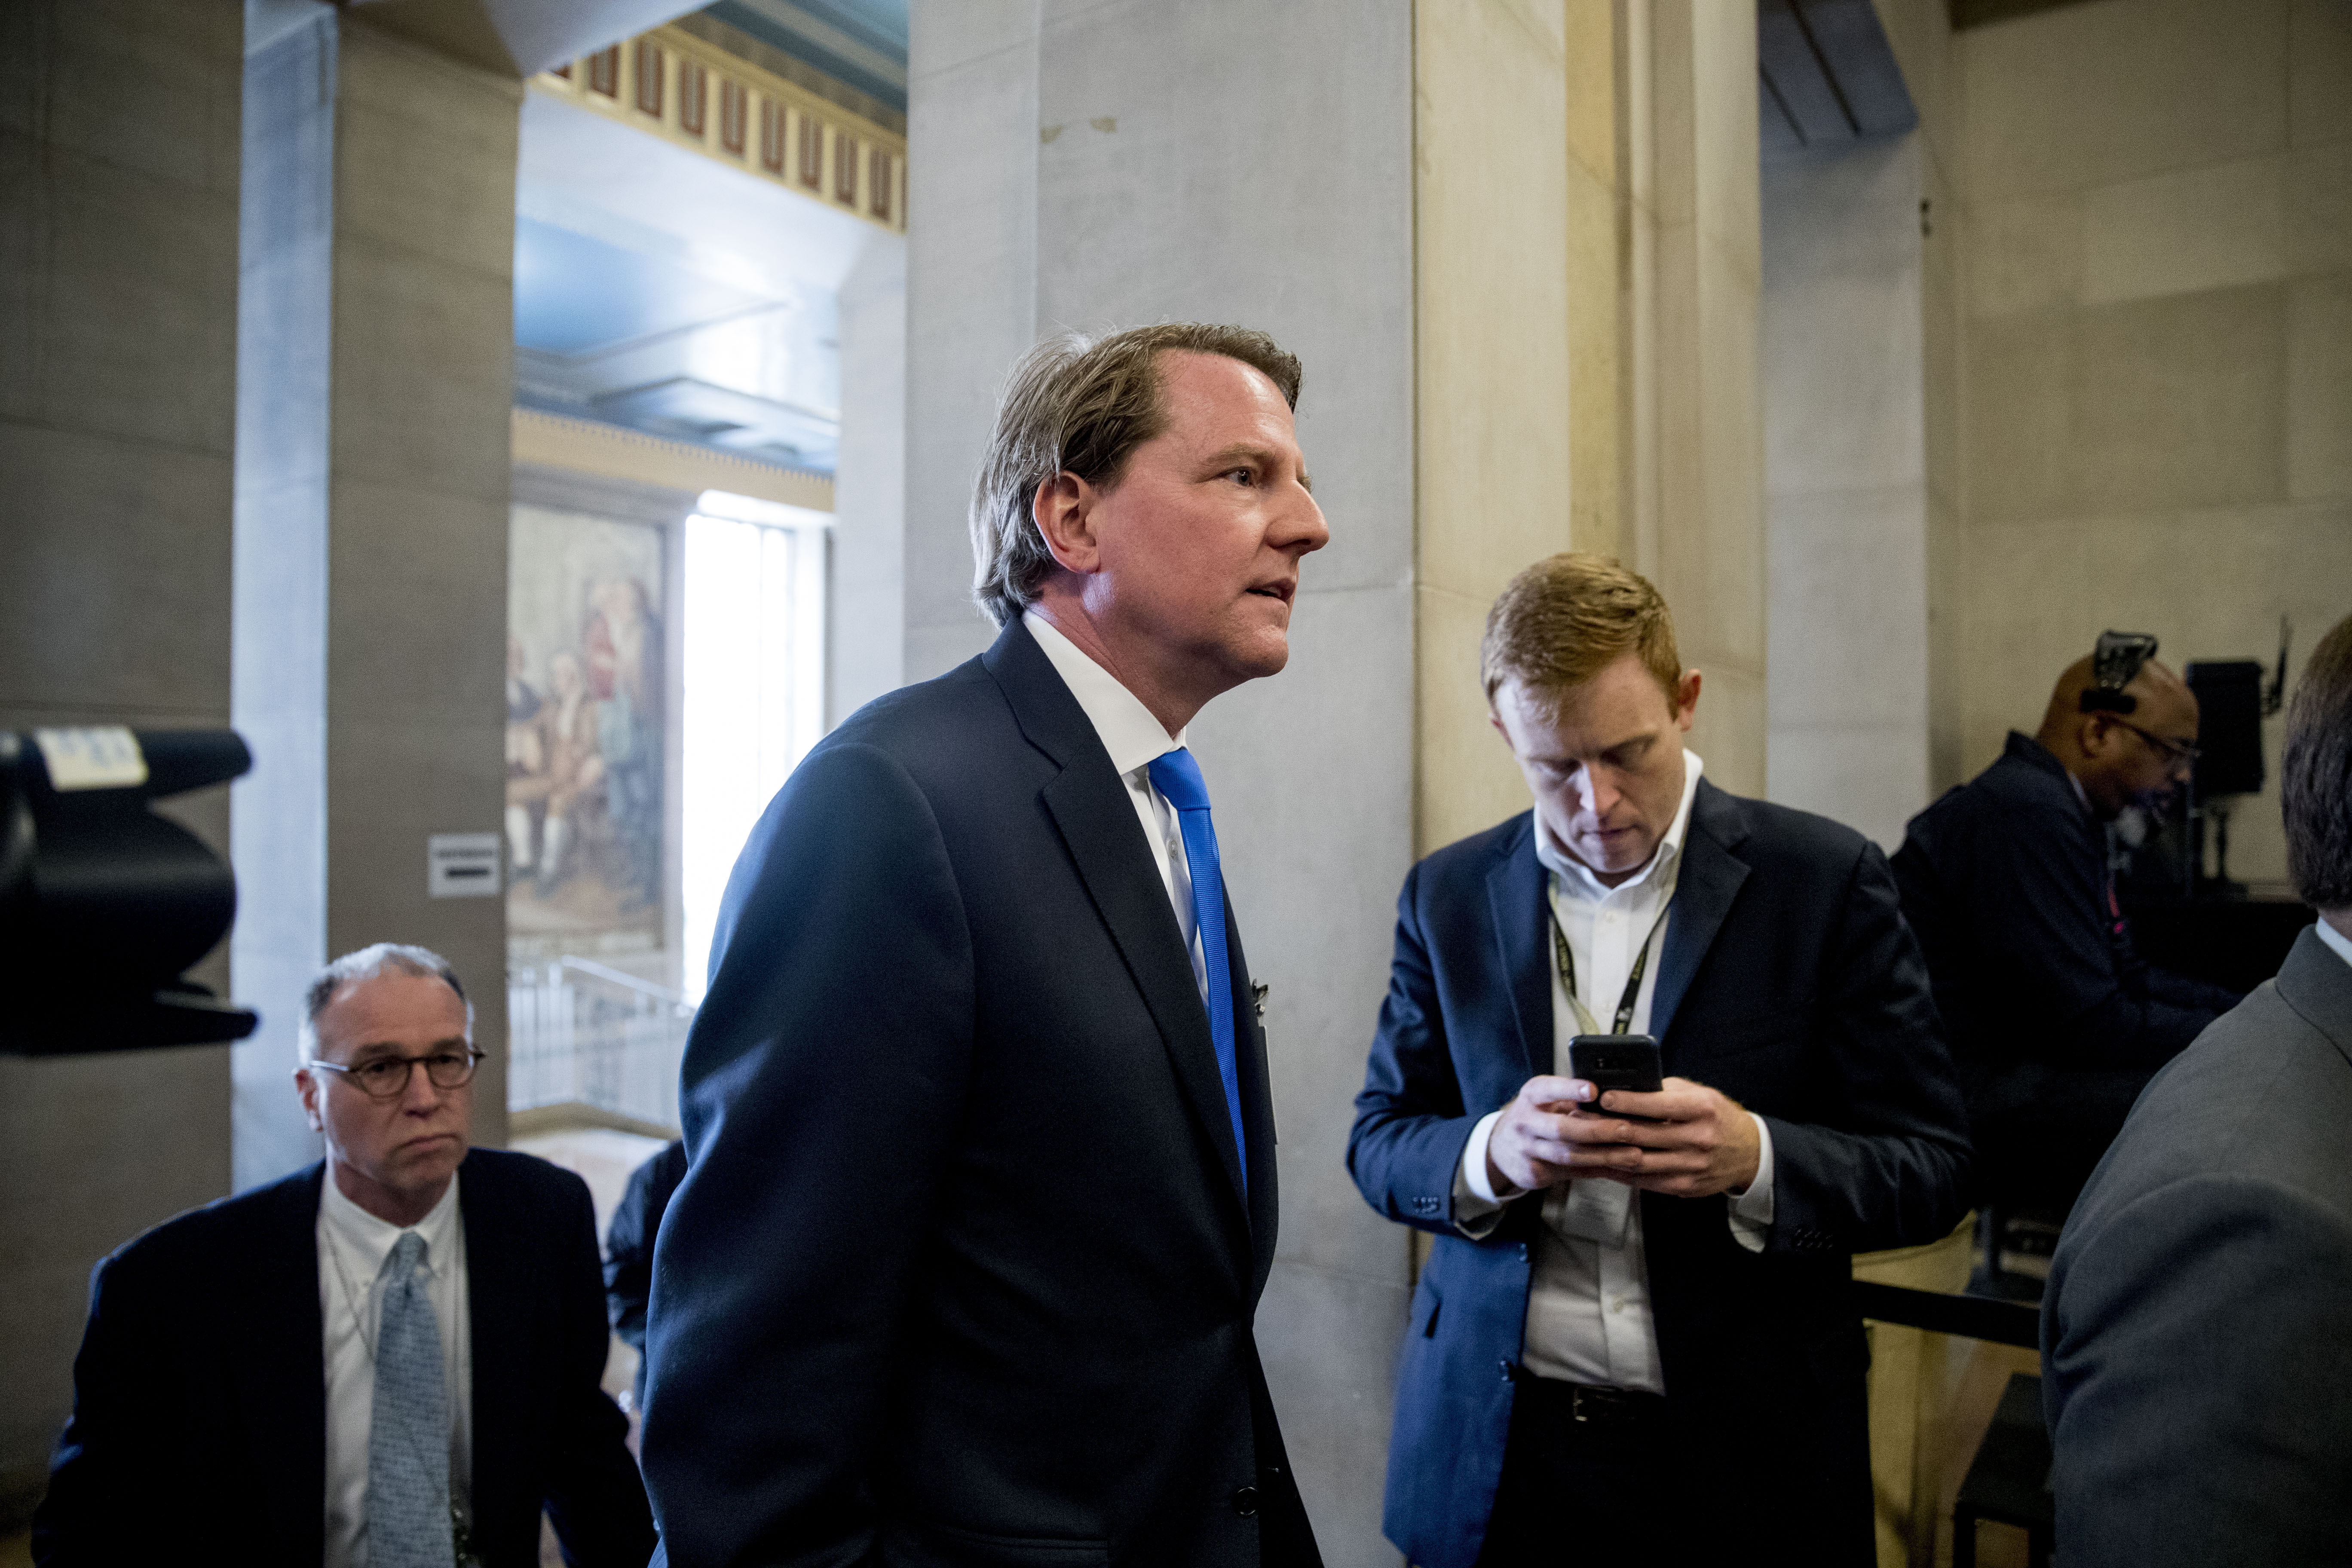 Former White House Counsel Don McGahn arrives for a farewell ceremony for Deputy Attorney General Rod Rosenstein in the Great Hall at the Department of Justice in Washington, Thursday, May 9, 2019.